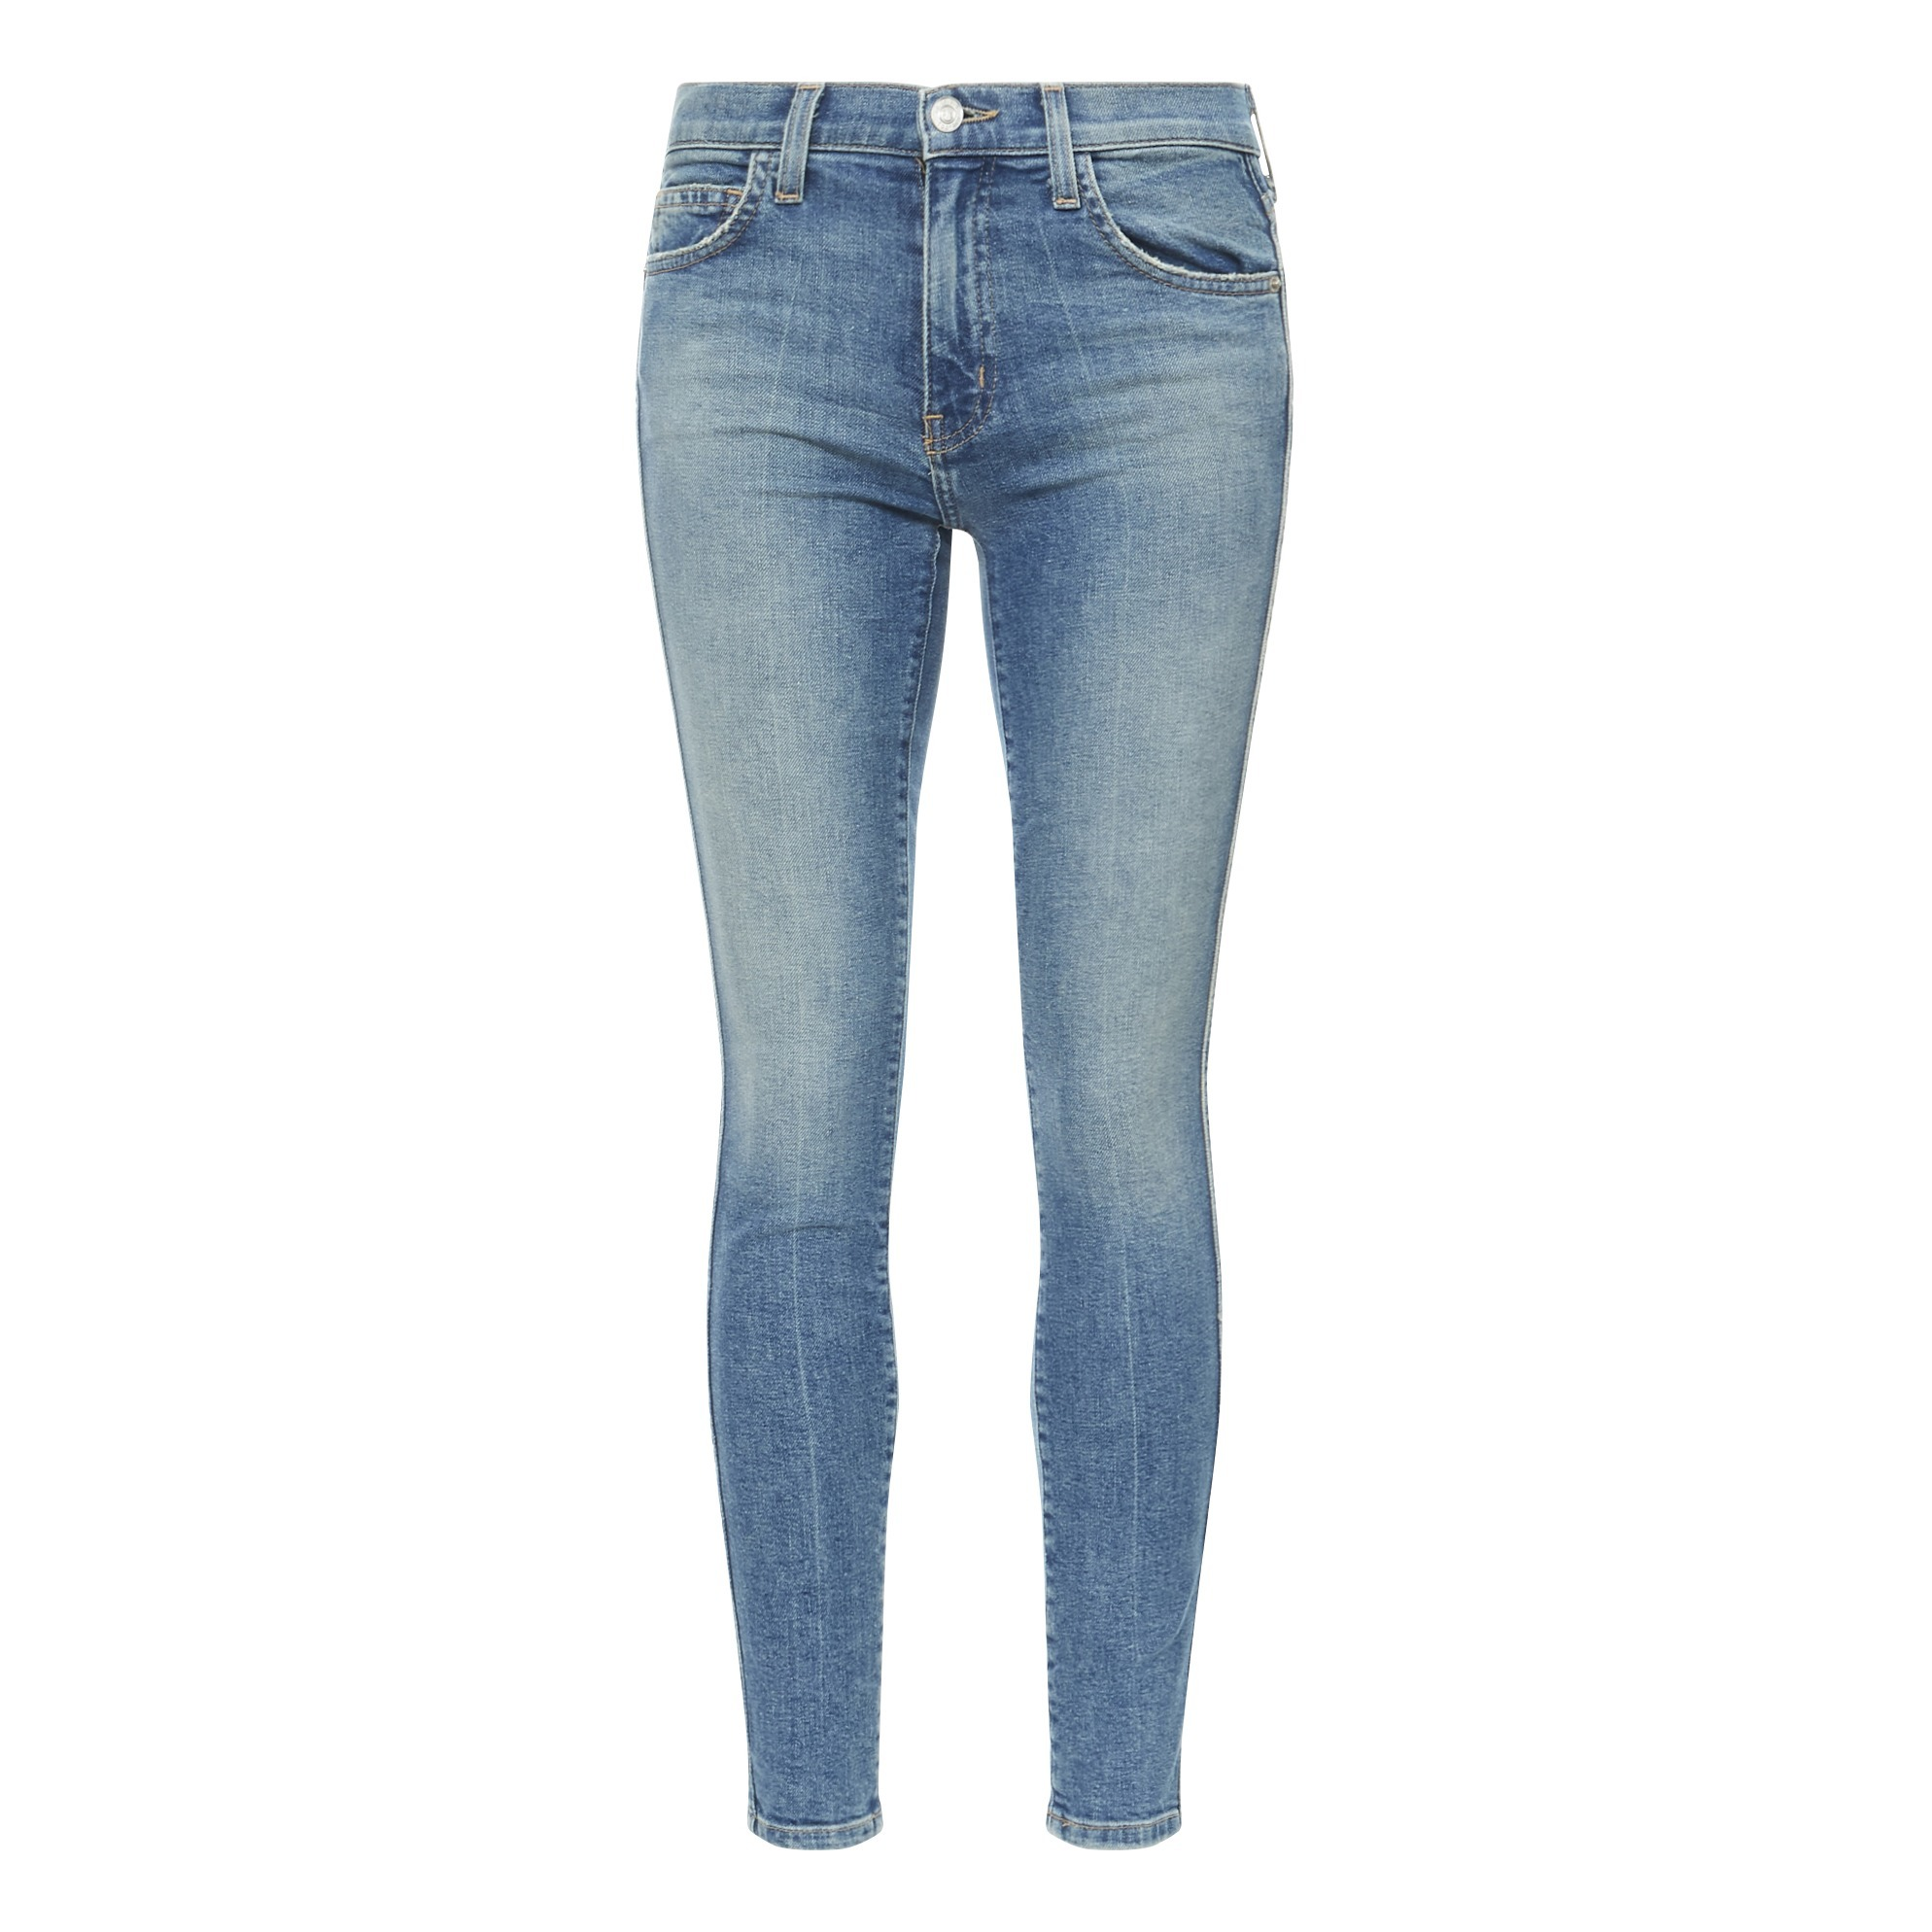 Jeans Skinny The Caballo High Waist Must-Have Angebot 6425